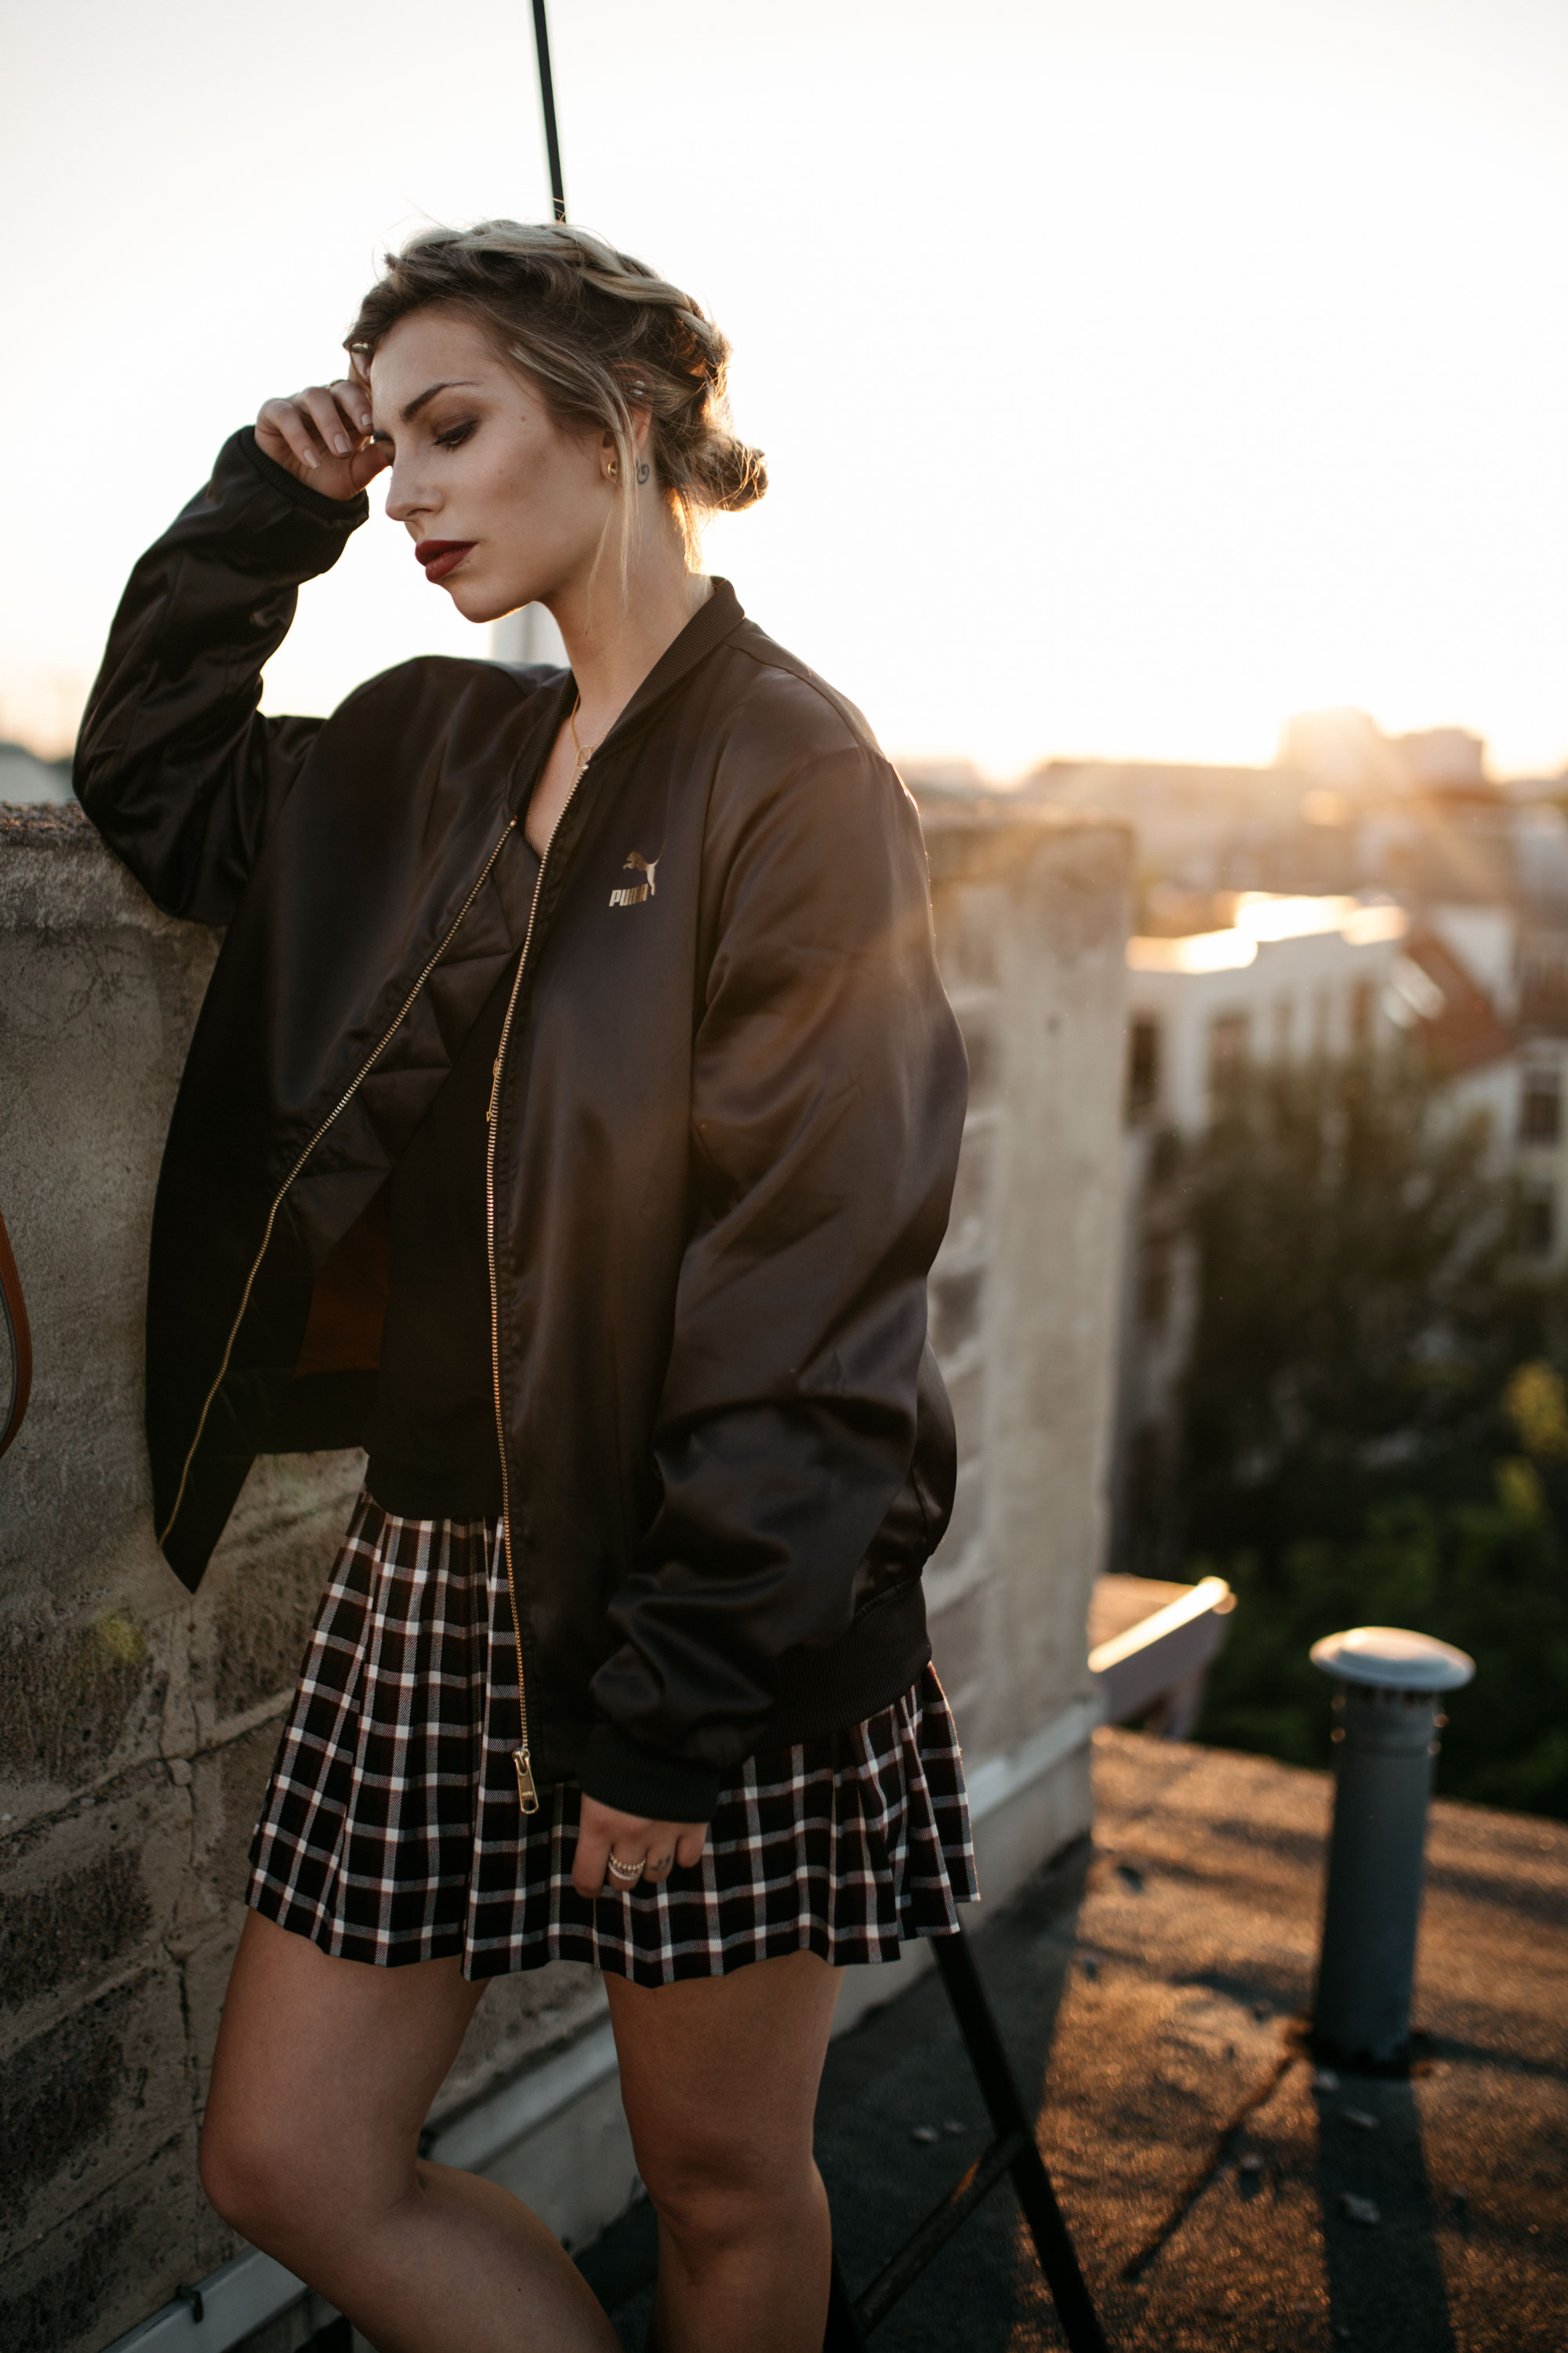 sundowner on the rooftop | Location: Berlin Friedrichshain | style: sporty, casual, girly, college | freedom